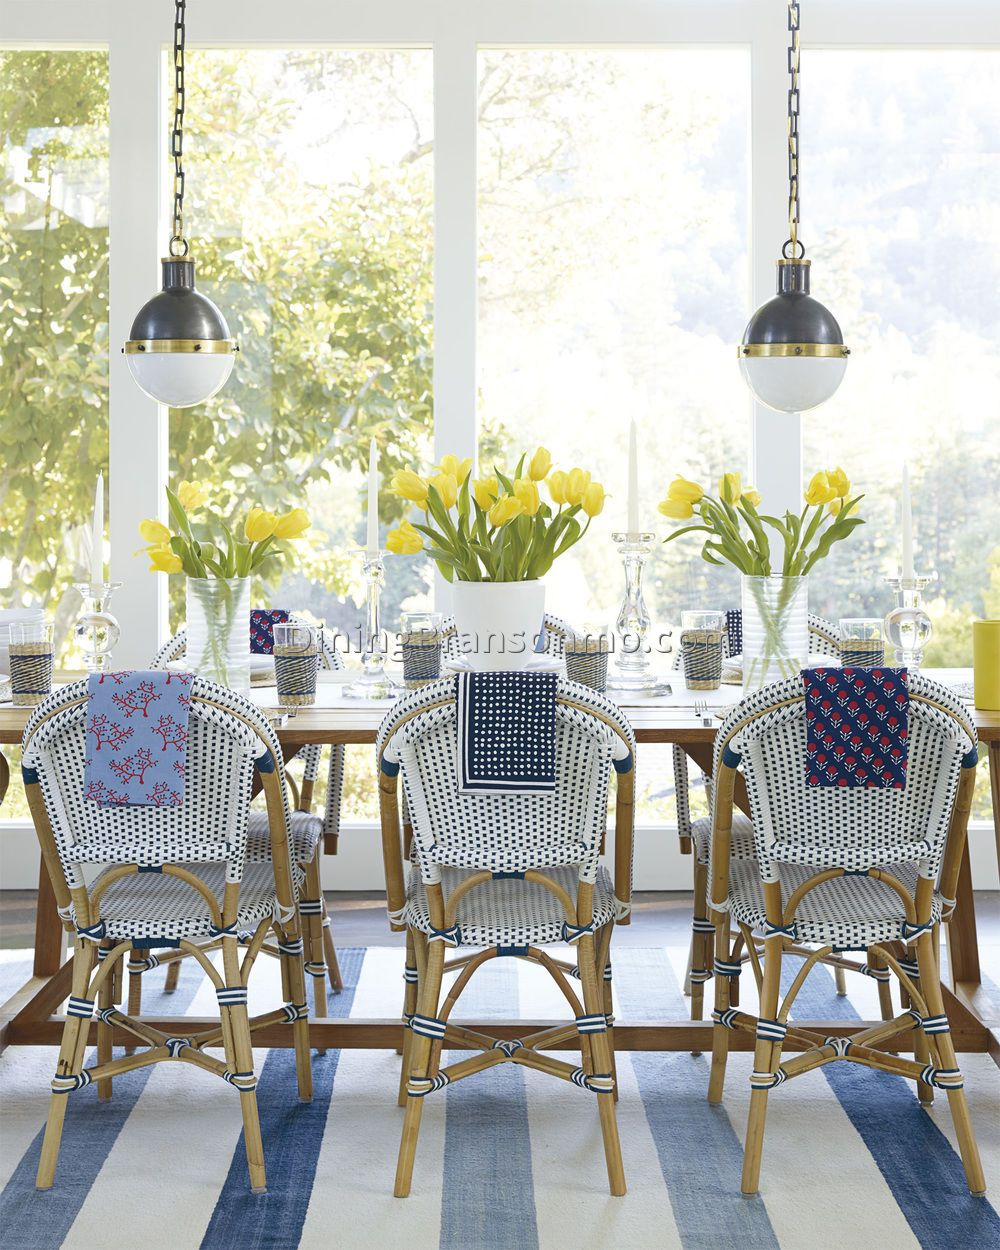 Dining Room Chair Cover Best Furniture Sets Tables And Table Chairs With Covers Walmart Rumah Desain Rumah Desain